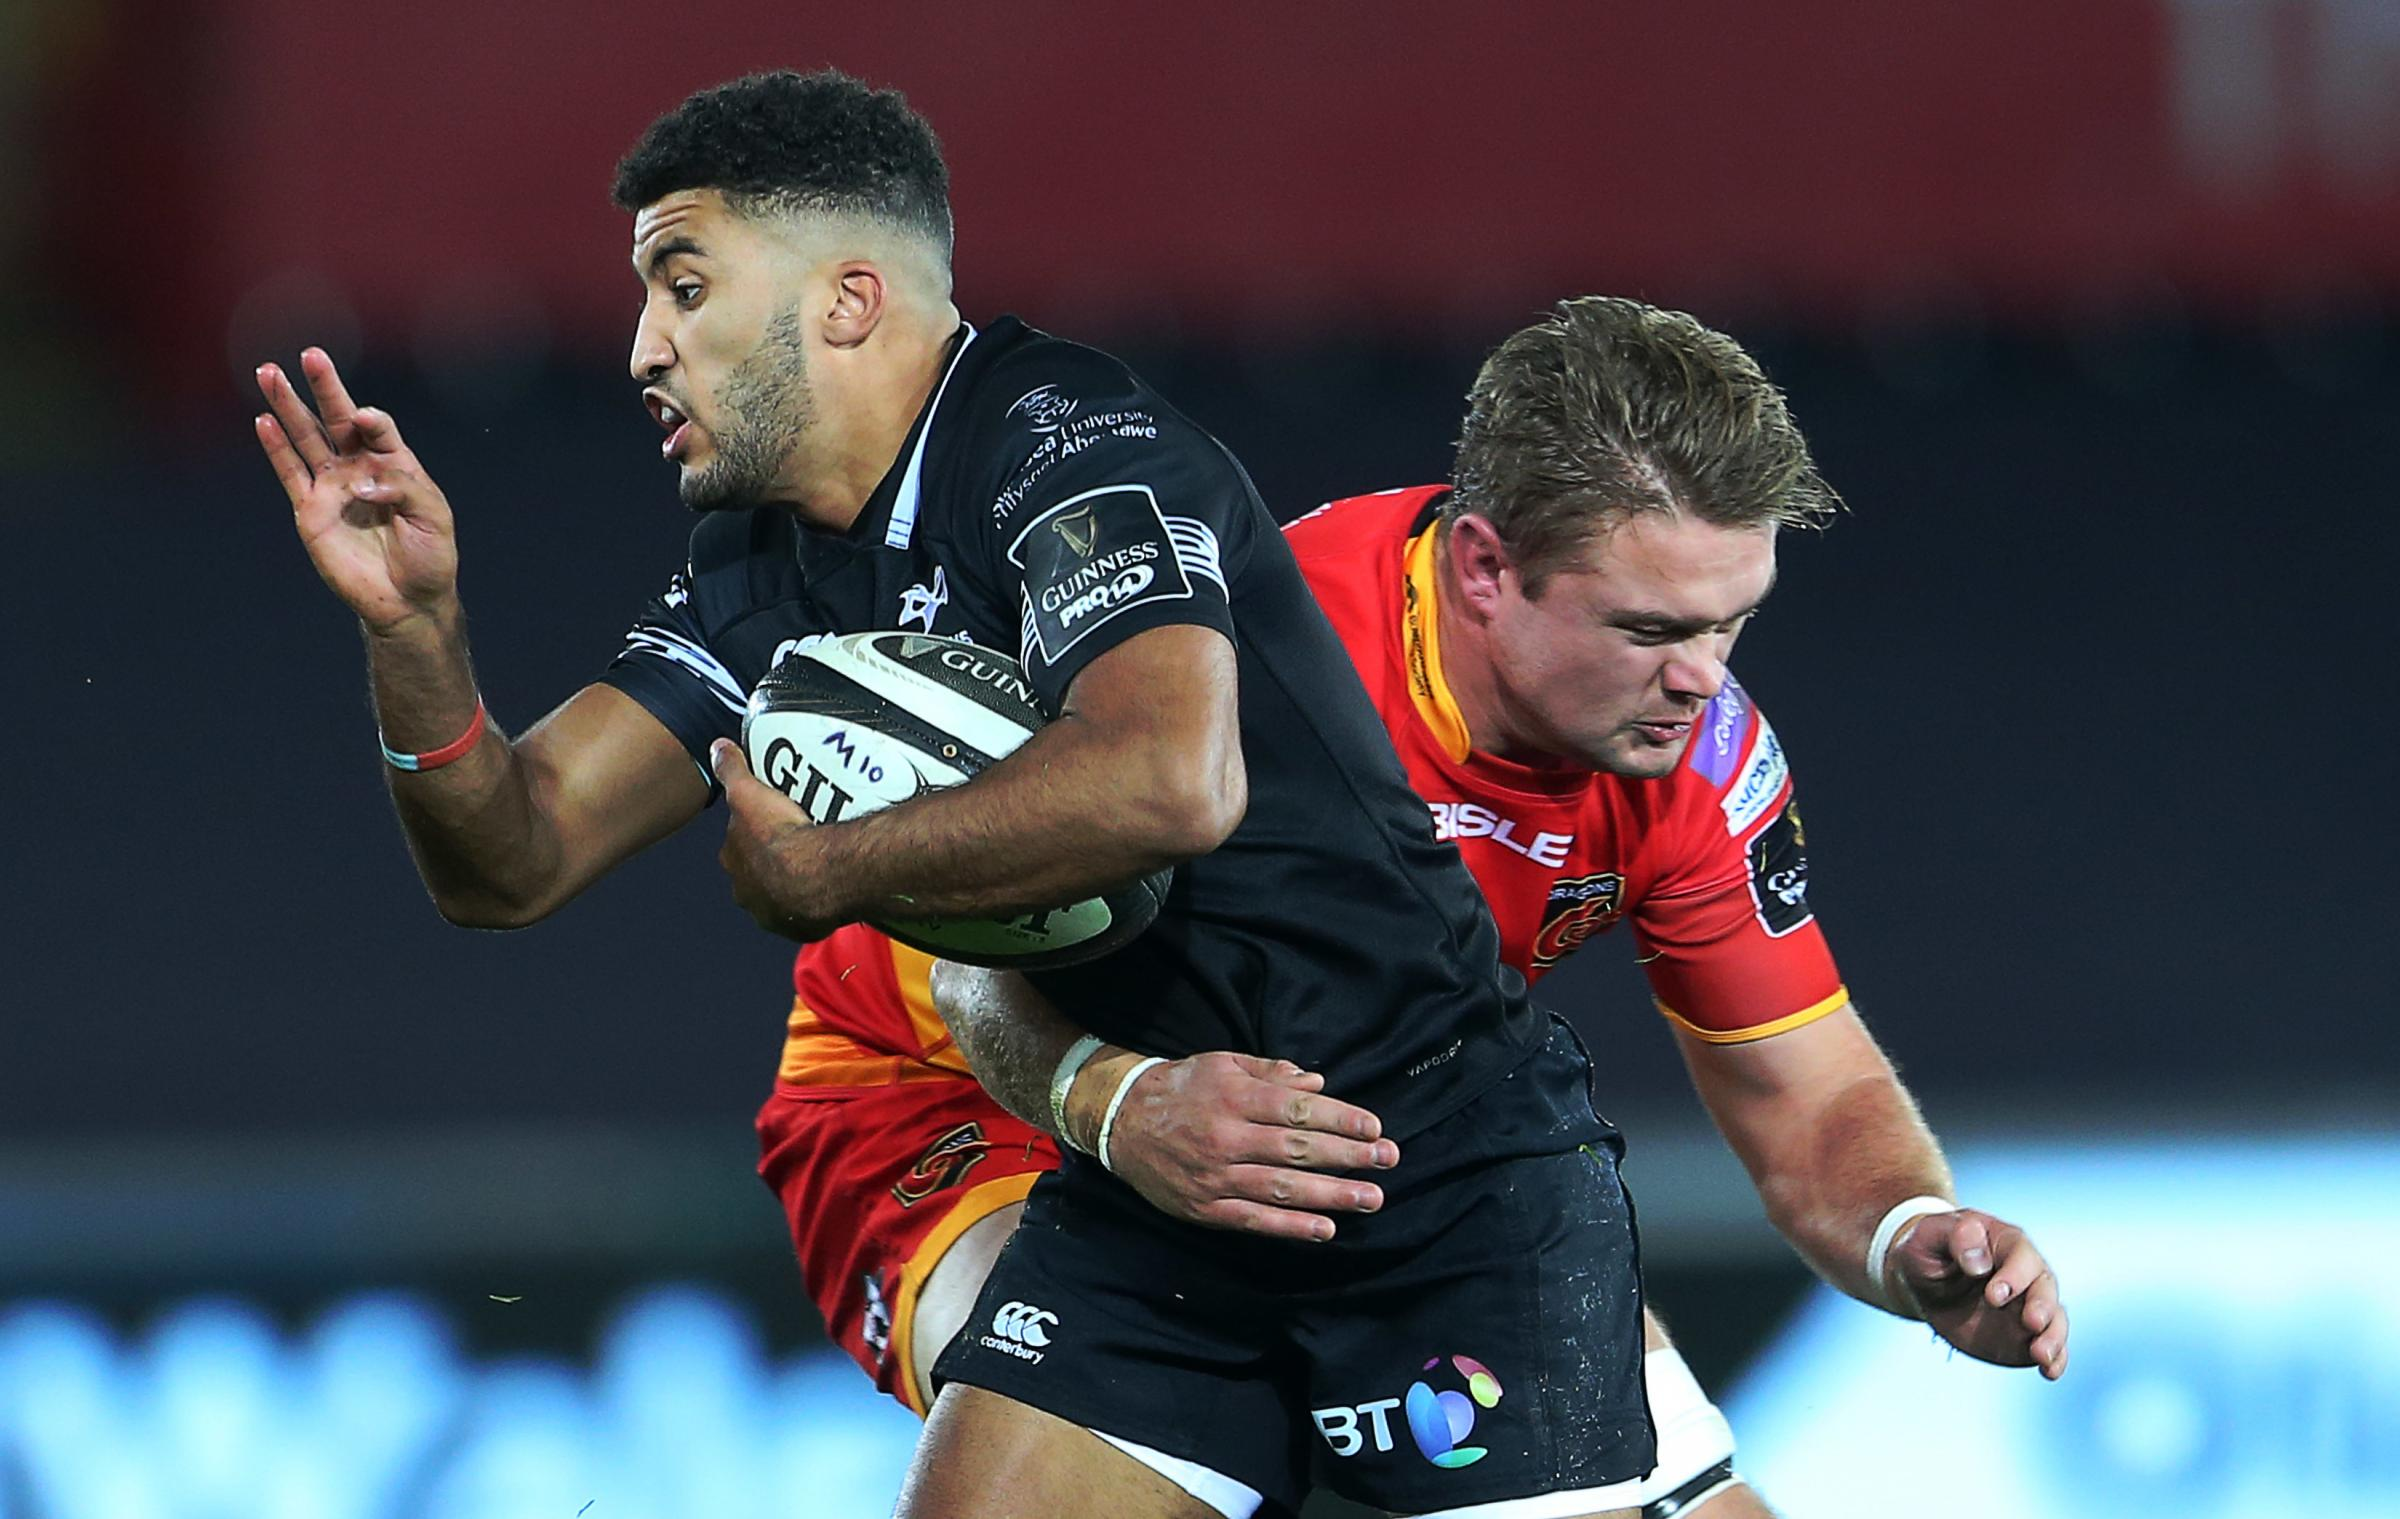 DERBY DAY: It's always a tough encounter with the Ospreys